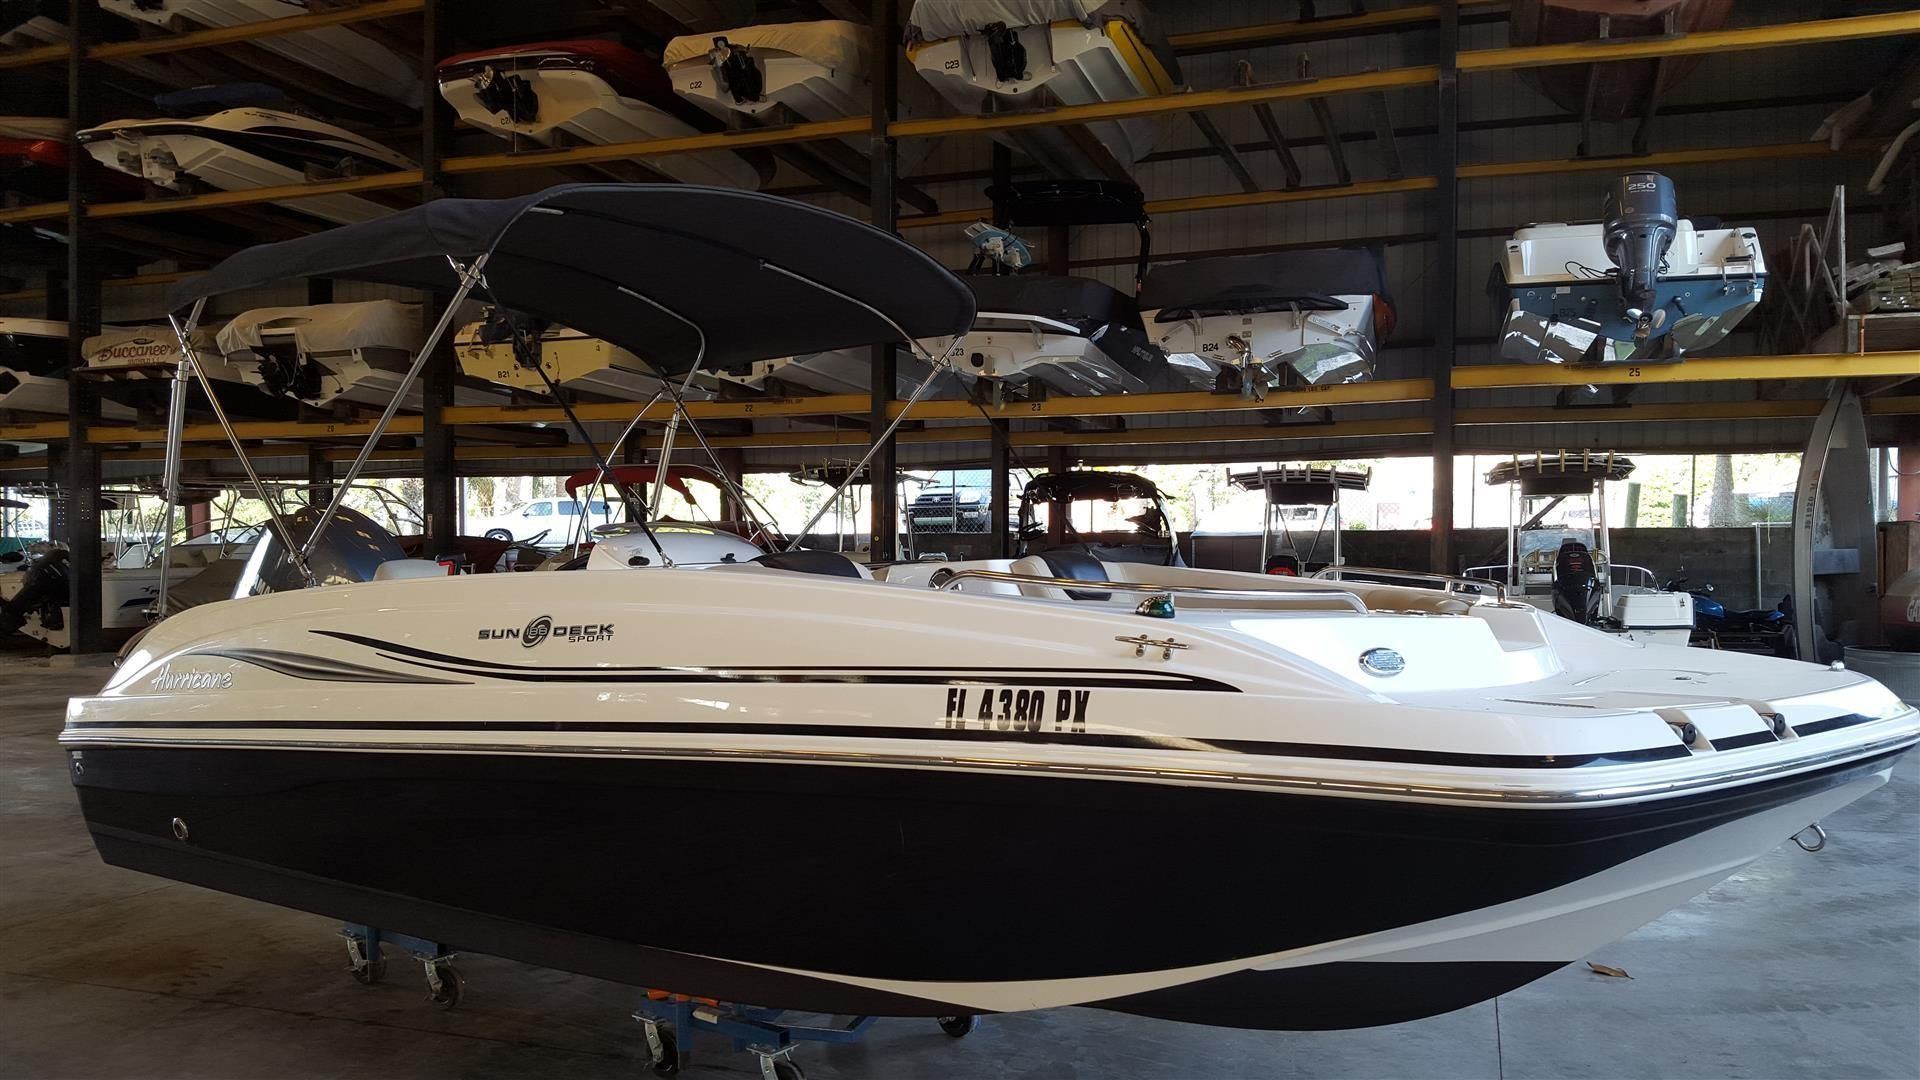 2015 hurricane sundeck sport 188 ob power boat for sale for Hurricane sundeck for sale